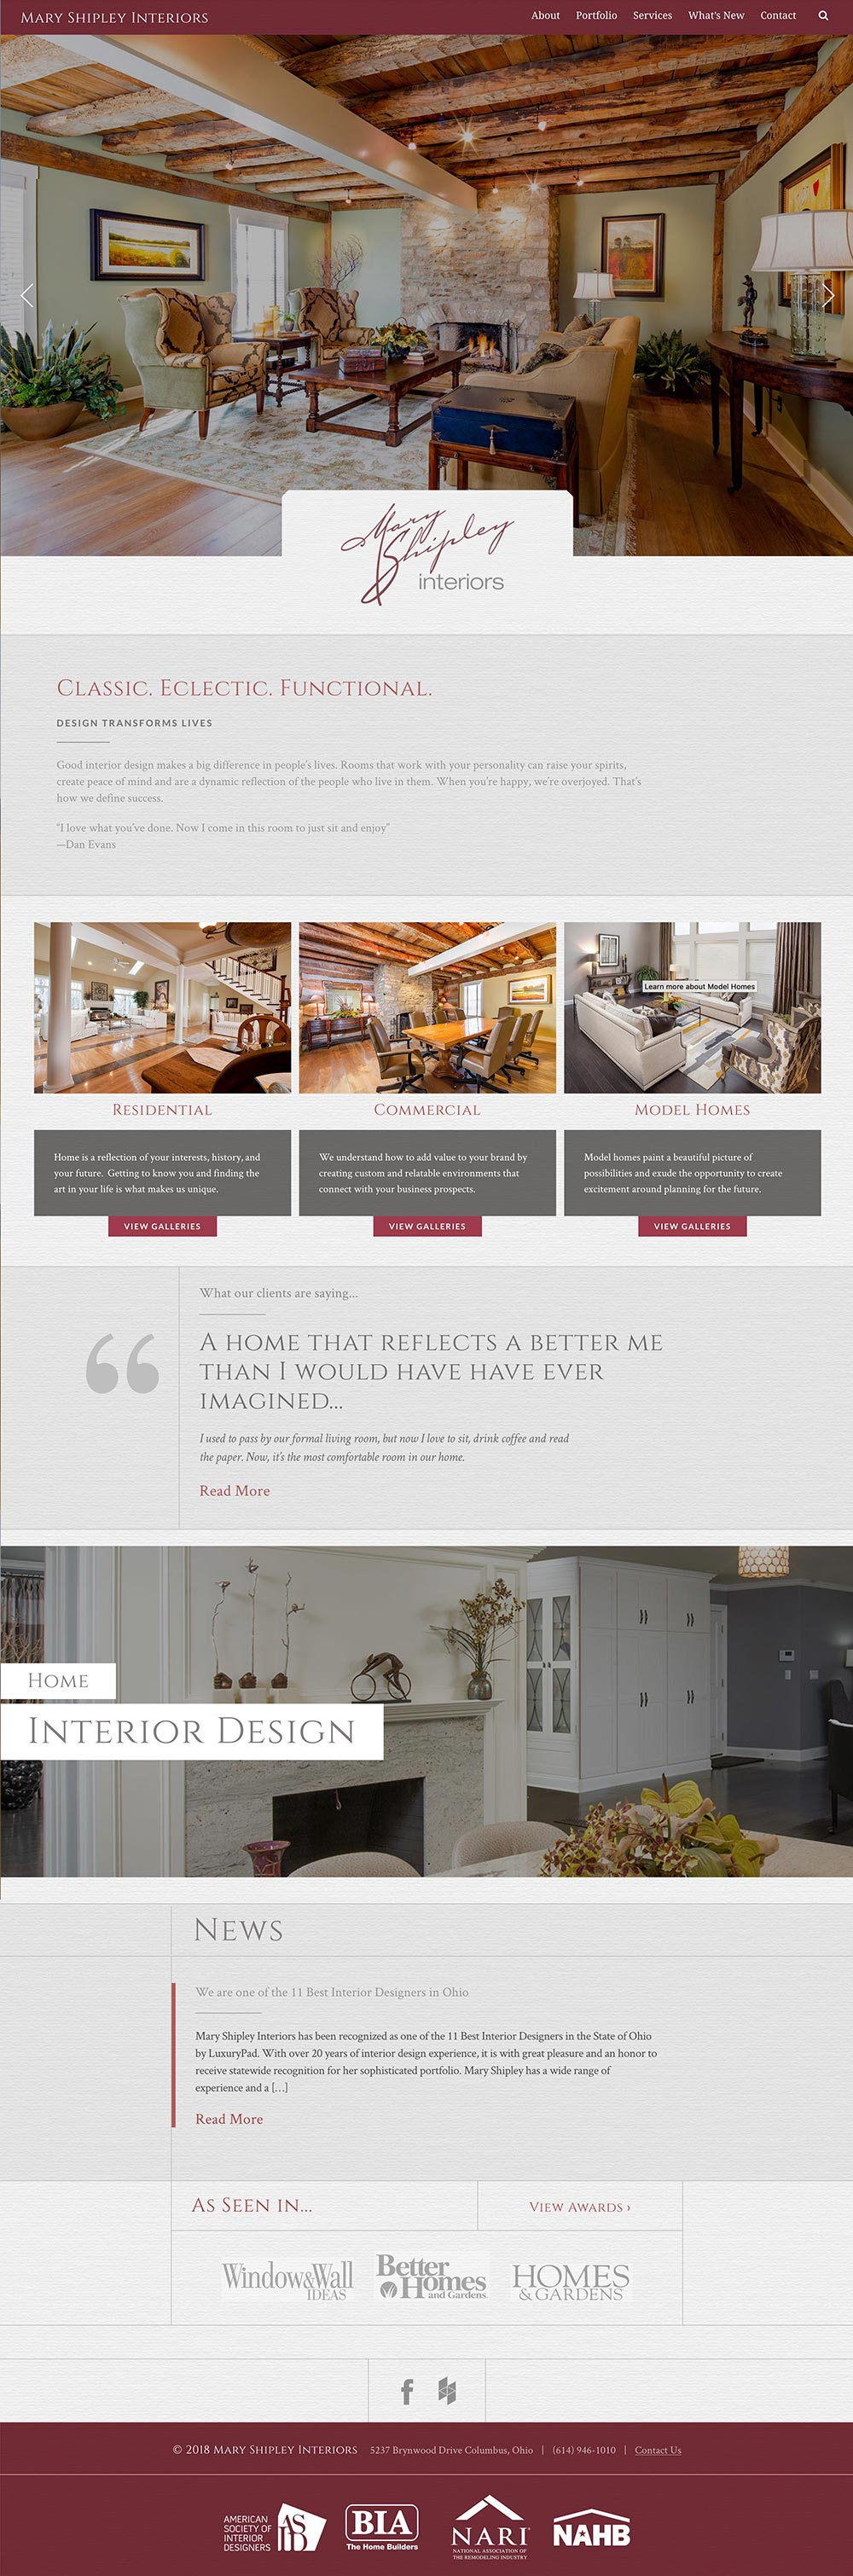 homepage design from Mary Shipley Interior Designer website